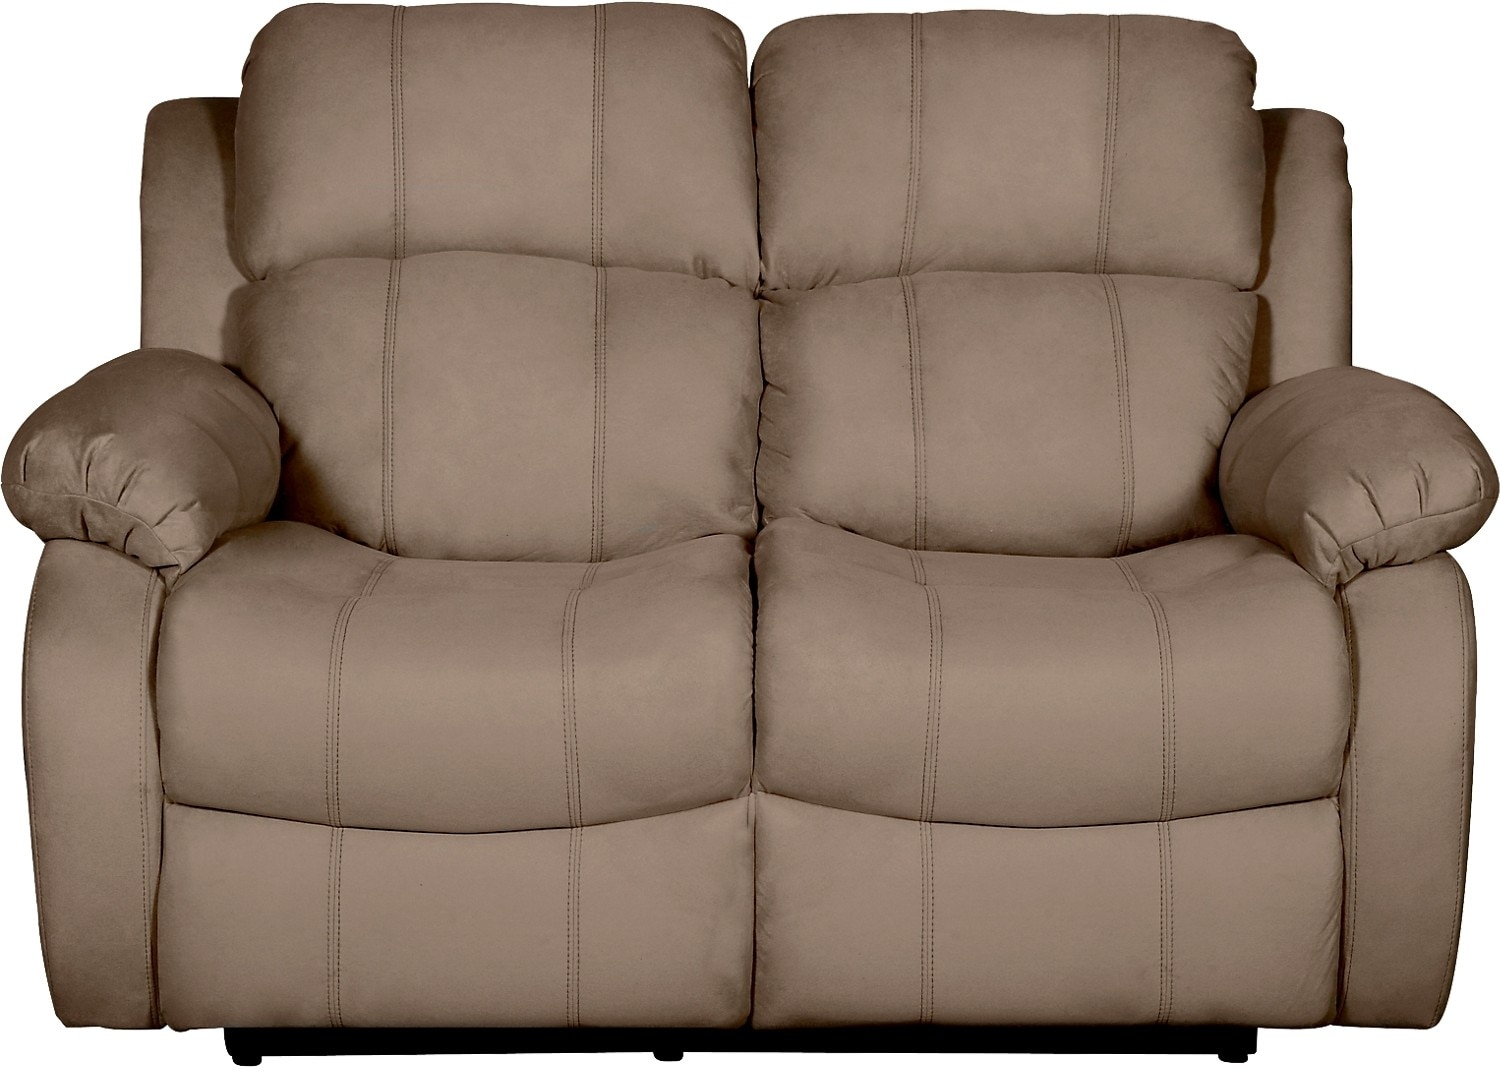 Omega 2 Microsuede Reclining Loveseat Mocha The Brick